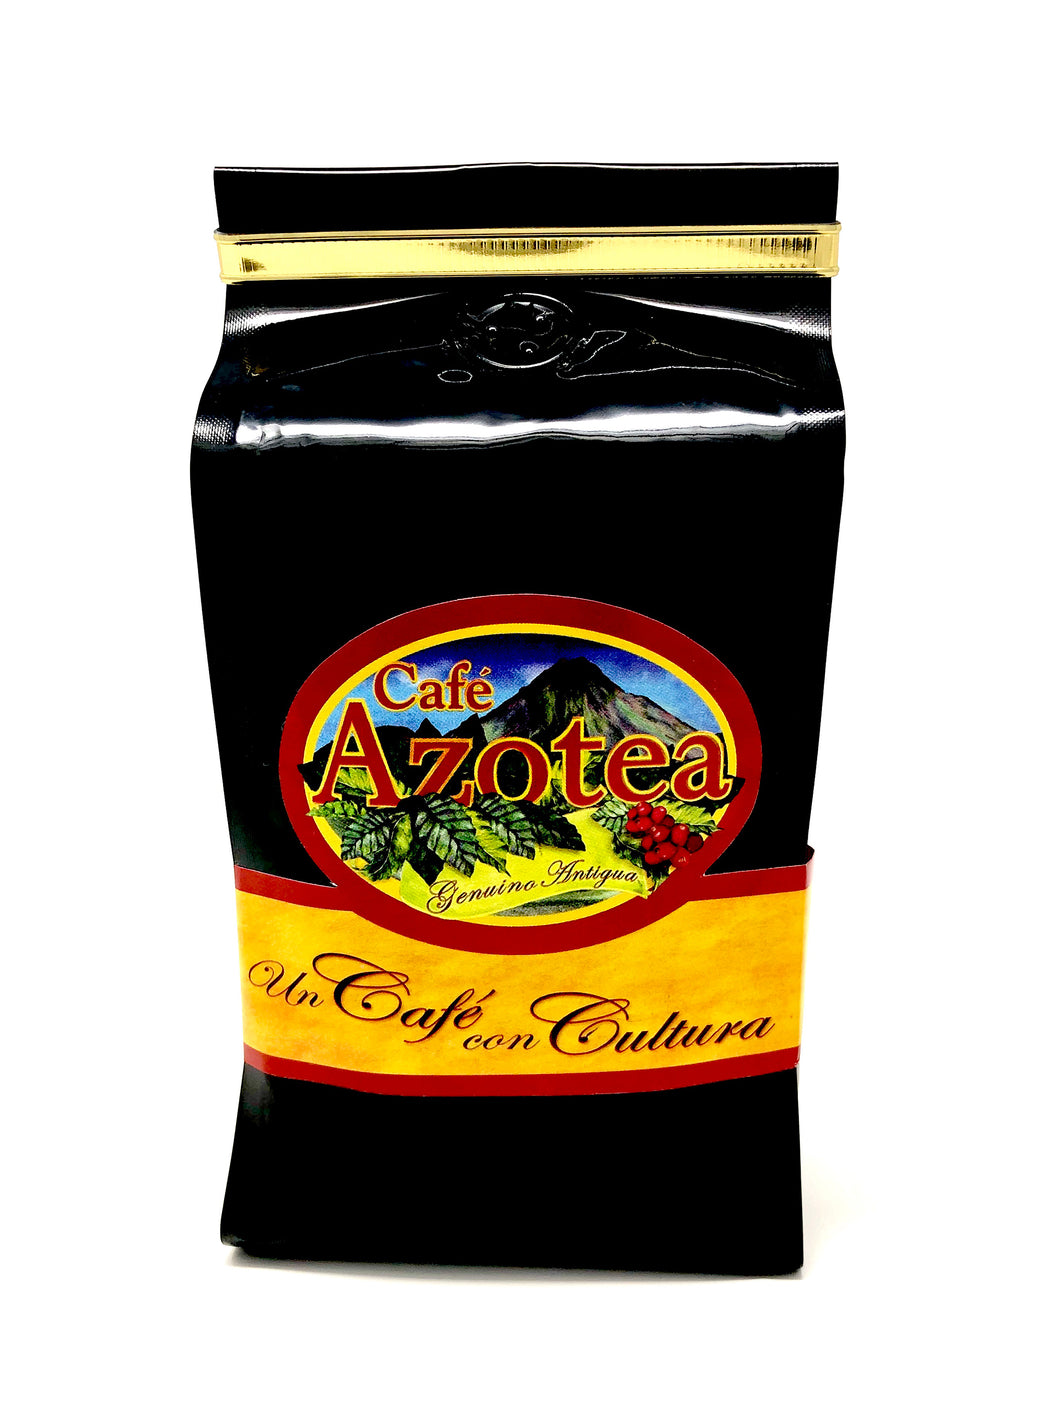 Black Laminated Bag 11.5 oz. Roasted Coffee Finca La Azotea